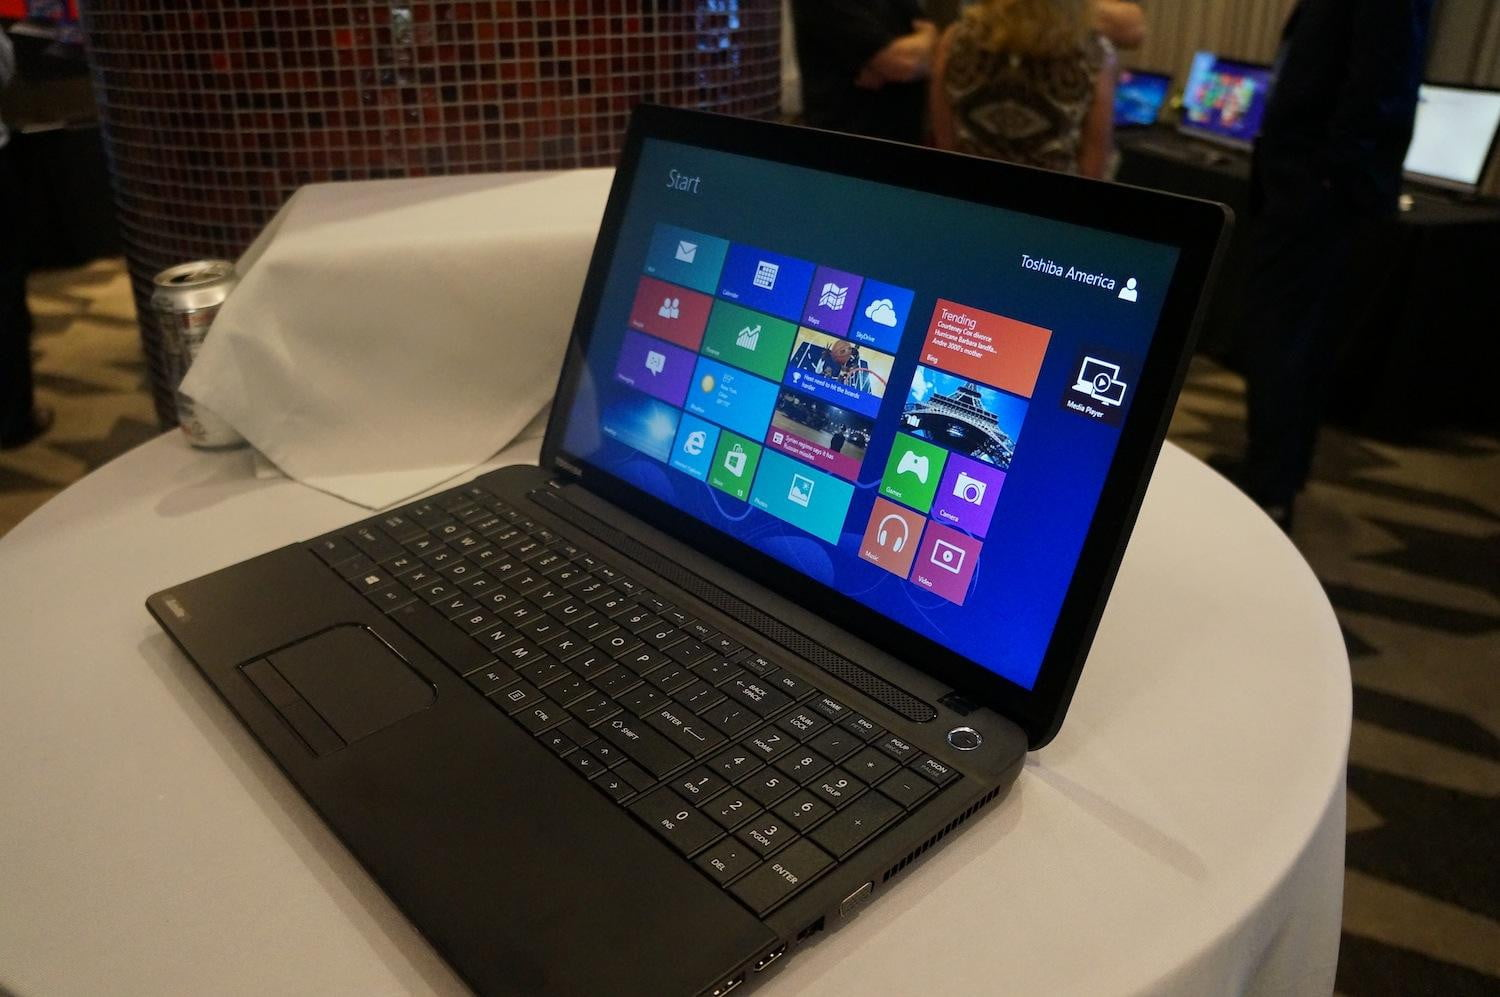 Toshiba updates Satellite series with Haswell processors and